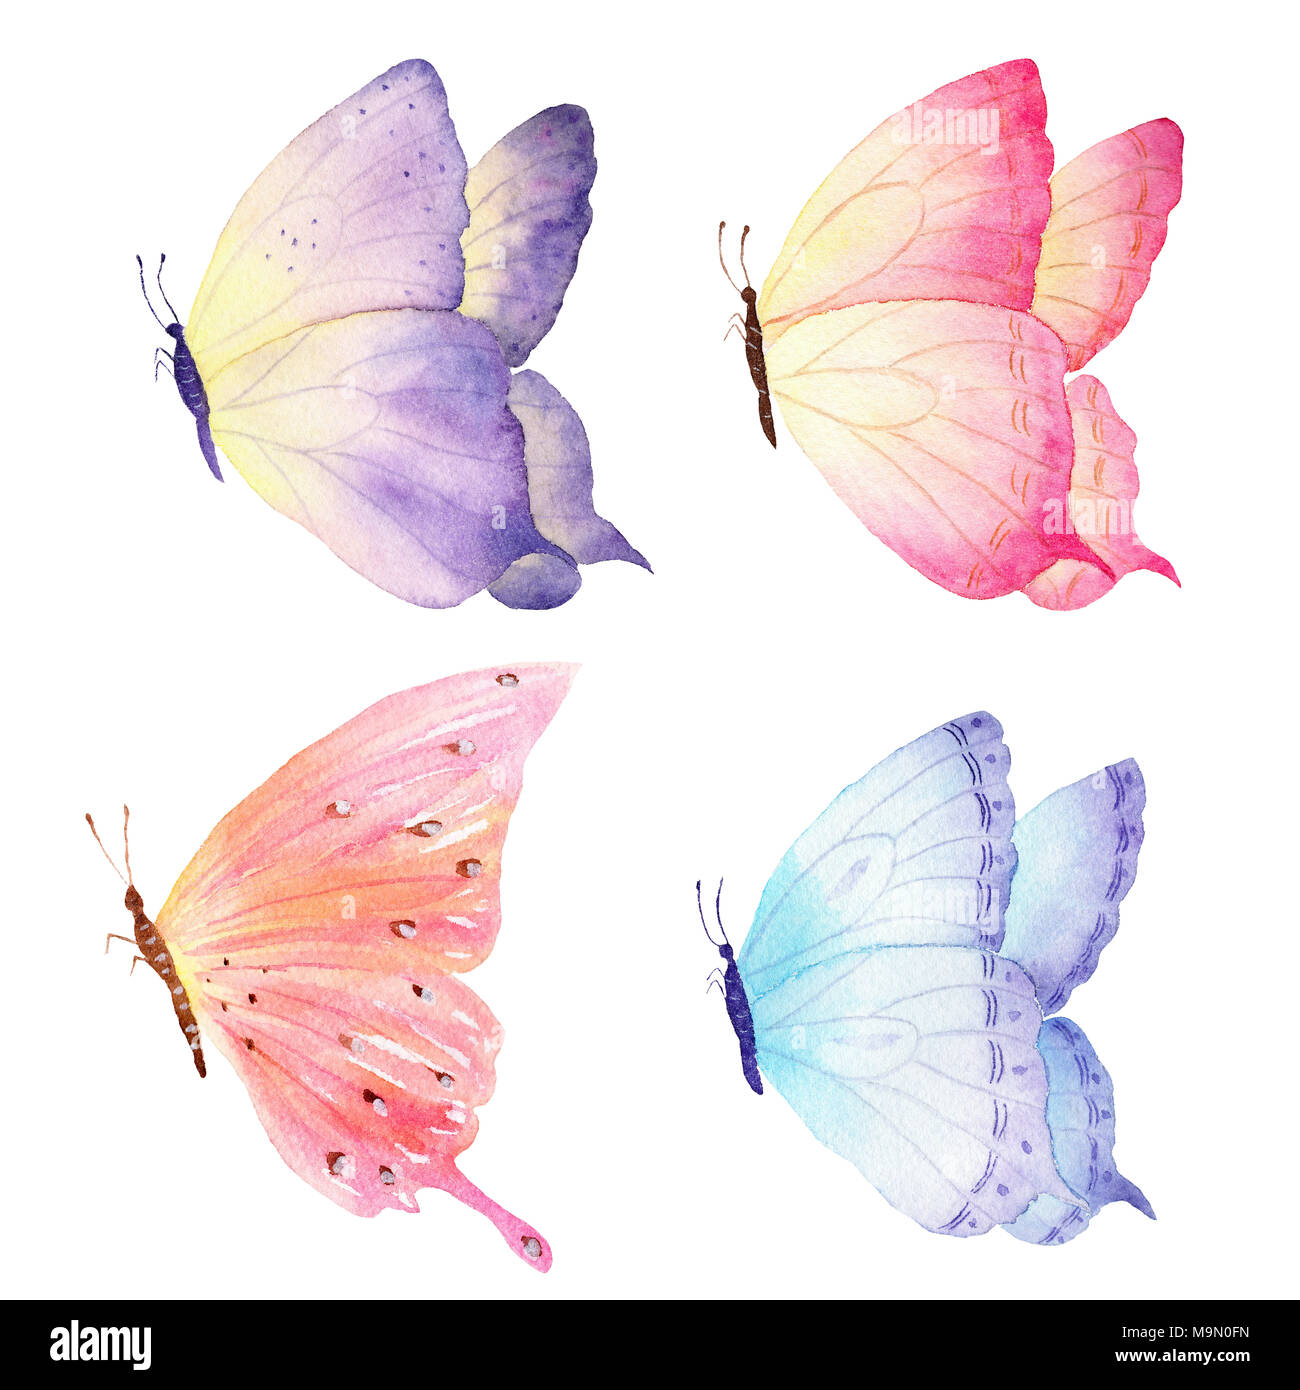 Most Inspiring Wallpaper Butterfly Hand - colorful-hand-drawn-watercolor-butterfly-collection-ideal-for-invitations-cards-wallpapers-printing-on-bags-and-fabric-M9N0FN  Photograph_239642.jpg